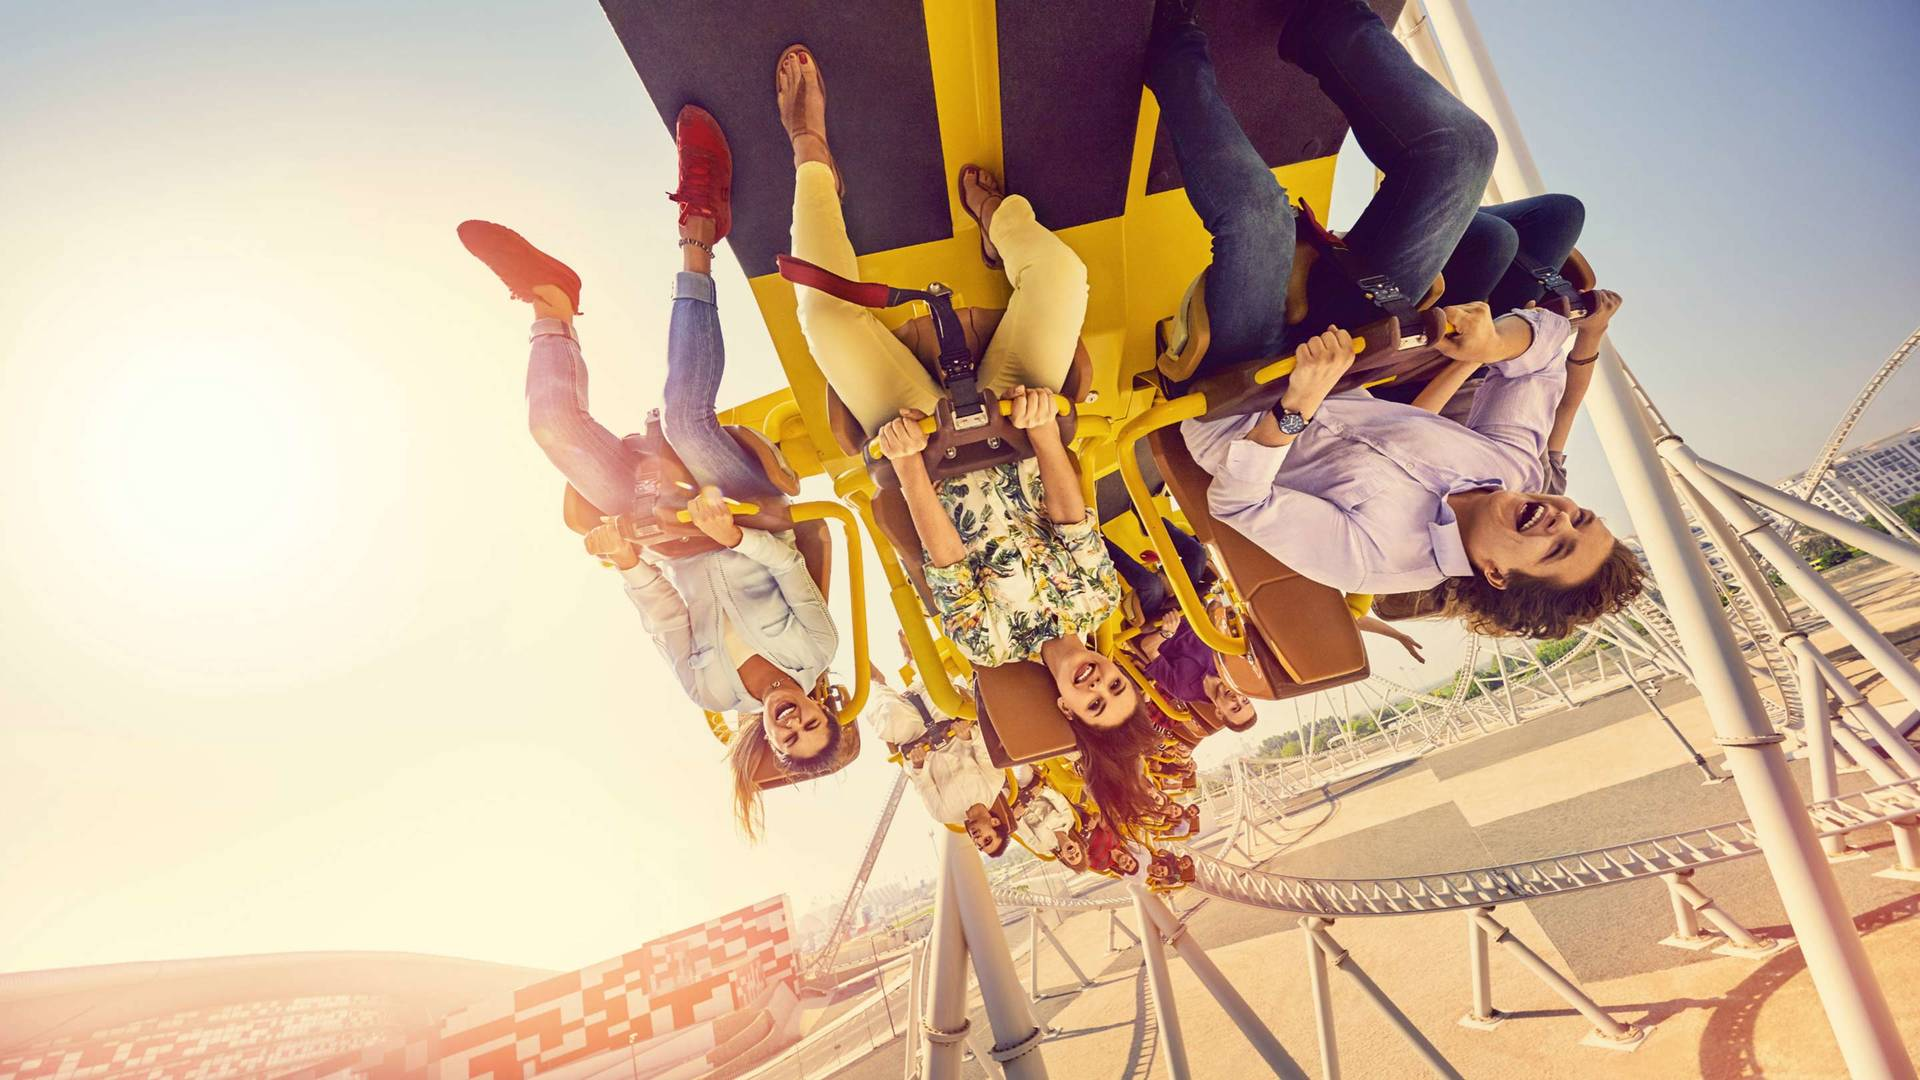 Family on the rollercoaster at Yas Land in Abu Dhabi